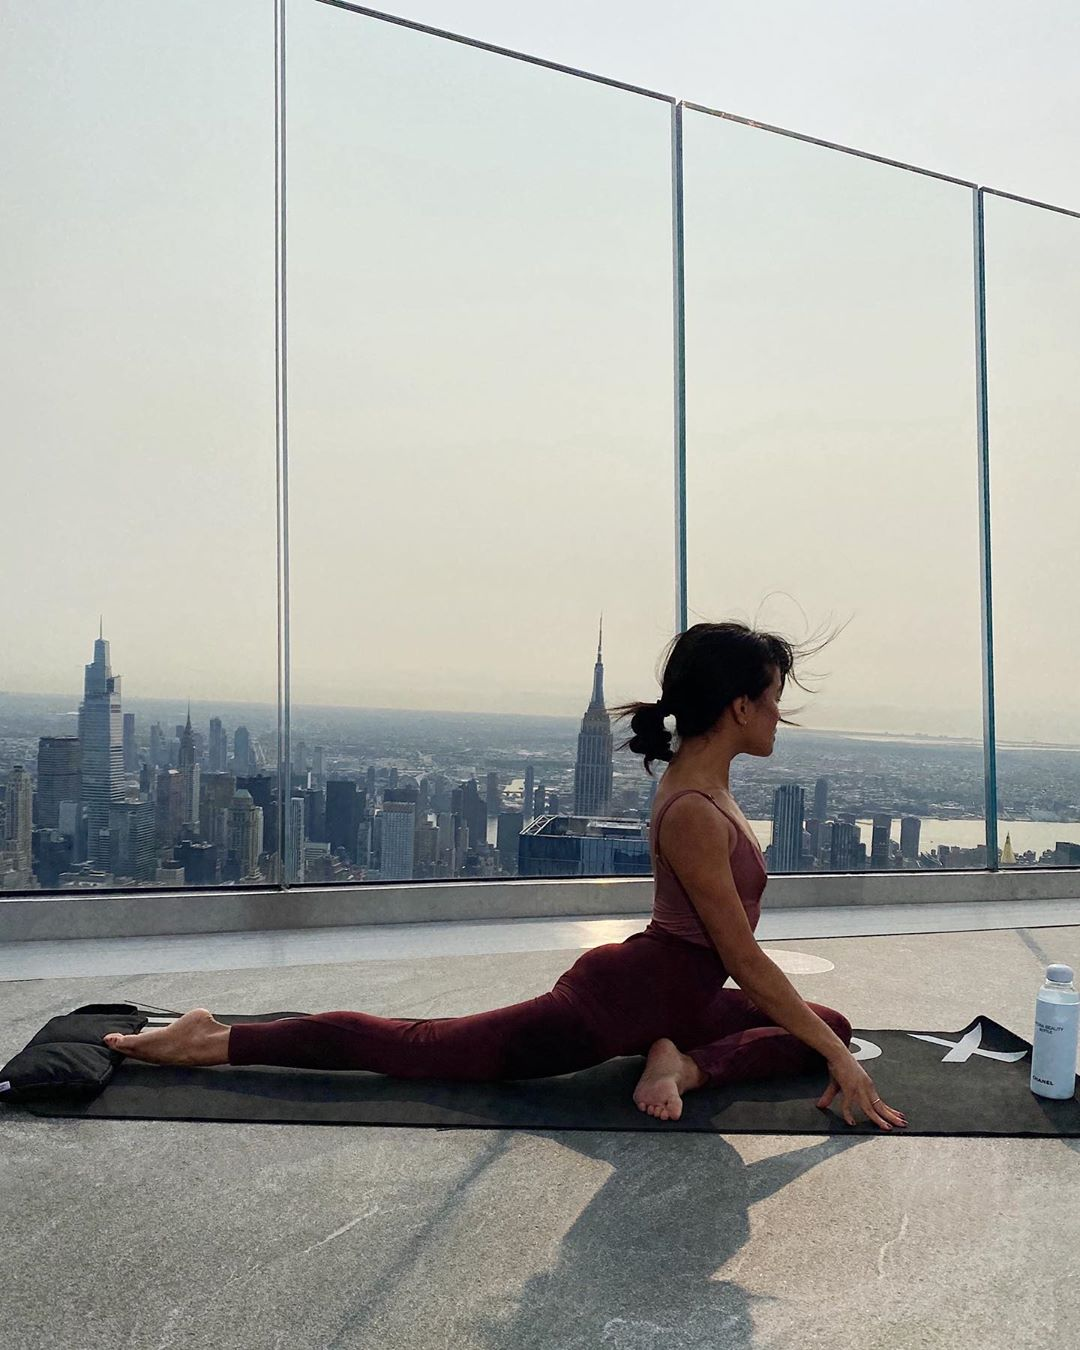 <woman in pigeon yoga position on edge observation deck with view of empire state building and nyc skyline in background